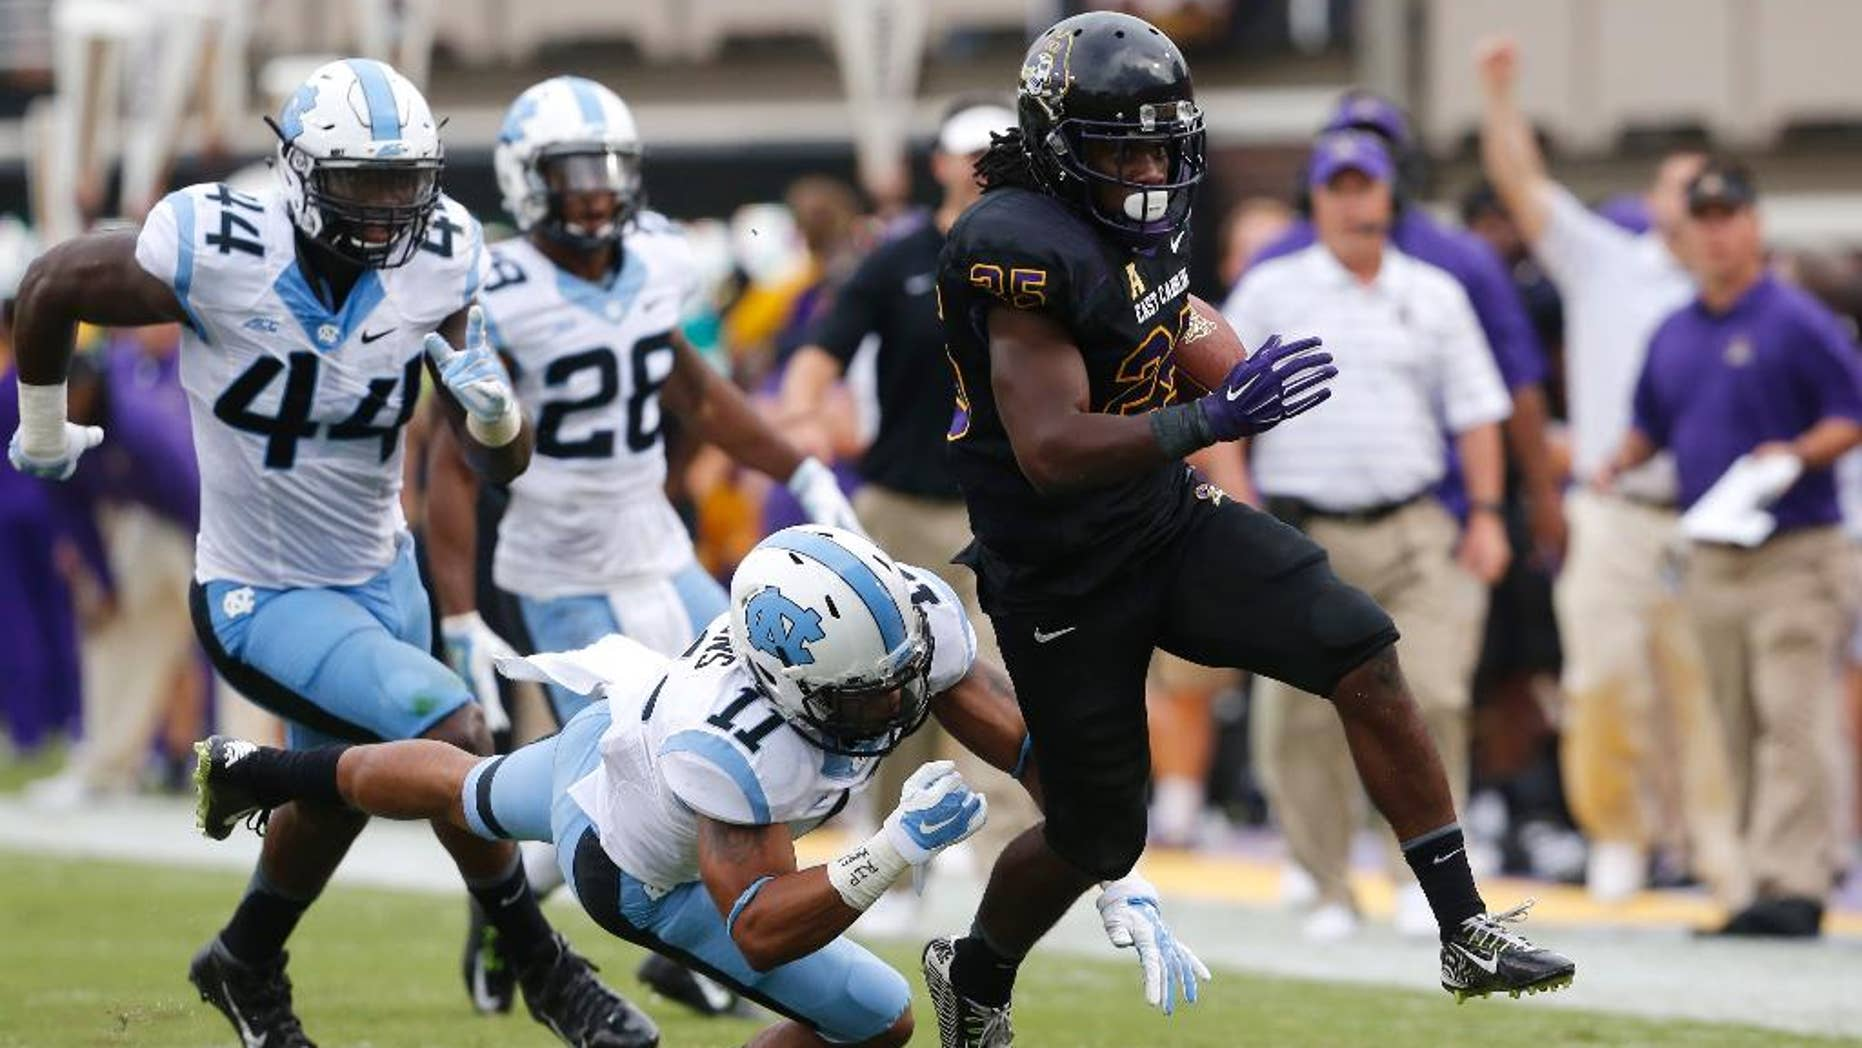 FILE - In this Sept. 20, 2014, file photo, East Carolina running back Breon Allen (25) beats North Carolina's Malik Simmons while scoring a 44-yard touchdown during the first half of their NCAA college football game at Dowdy-Ficklen Stadium in Greenville, N.C. Allen turned in a huge rushing day in the win that pushed East Carolina into the national rankings. Allen's emergence could help replace the rushing production lost from last season for the No. 22 Pirates, who make their American Athletic Conference debut Saturda, Oct. 4, 2014,  against SMU.  (AP Photo/The News & Observer, Ethan Hyman, File)